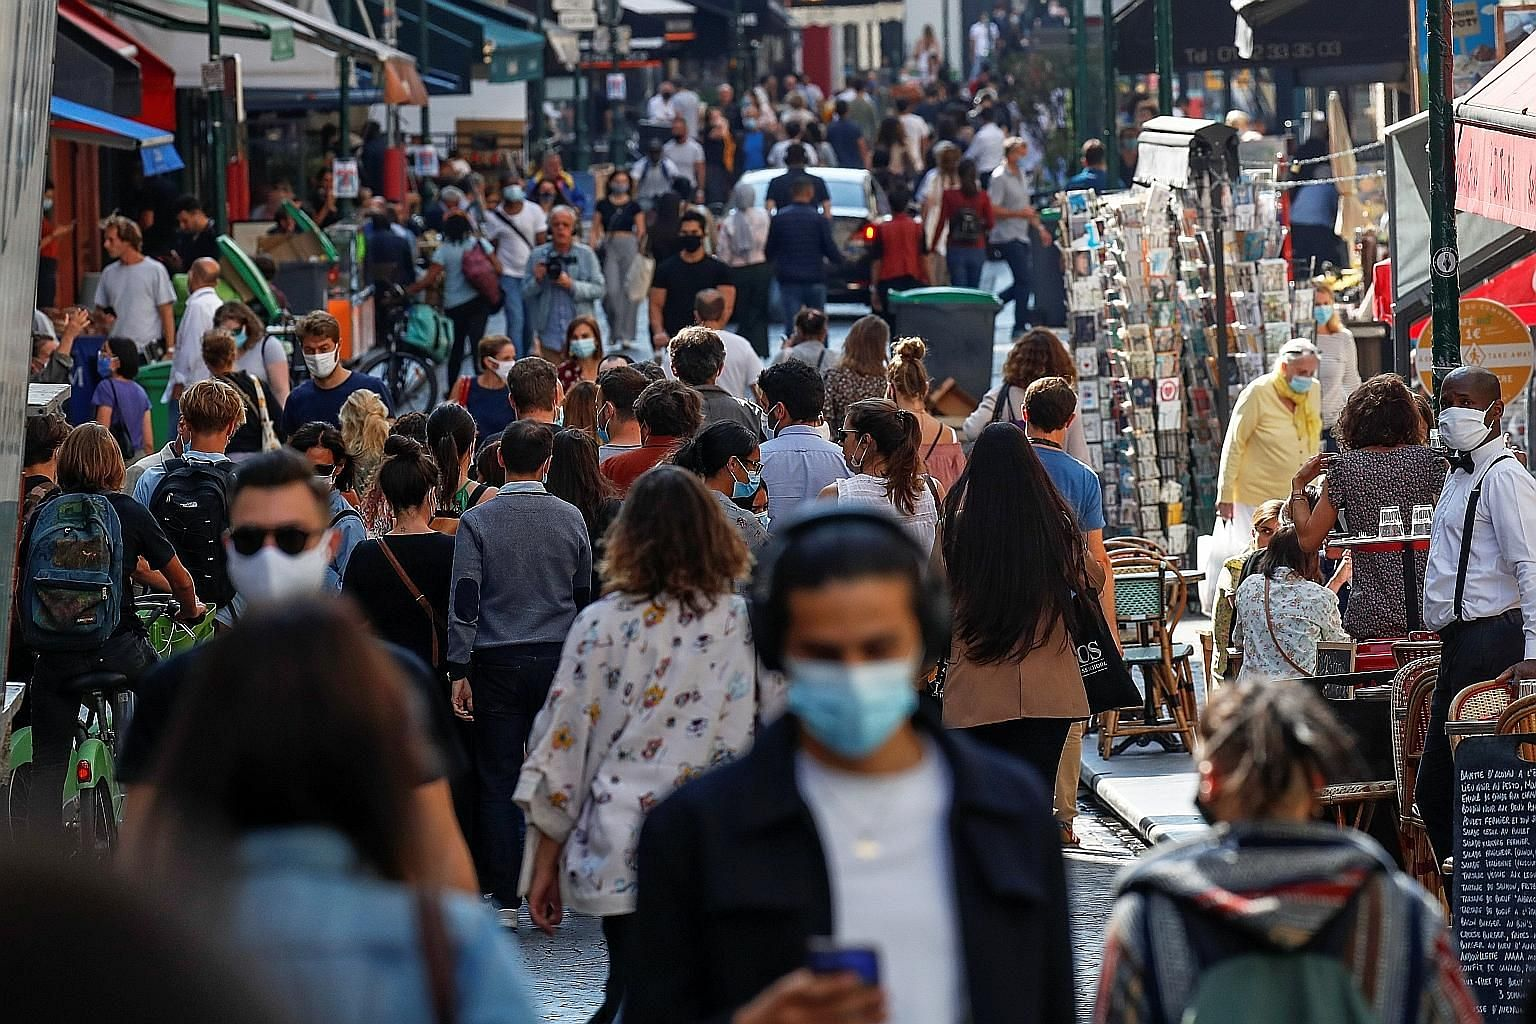 Paris, where the virus has been circulating more quickly than elsewhere, has not banned gatherings of more than 10 people but the police have strongly advised against private gatherings of more than that number. The most affected regions and cities i